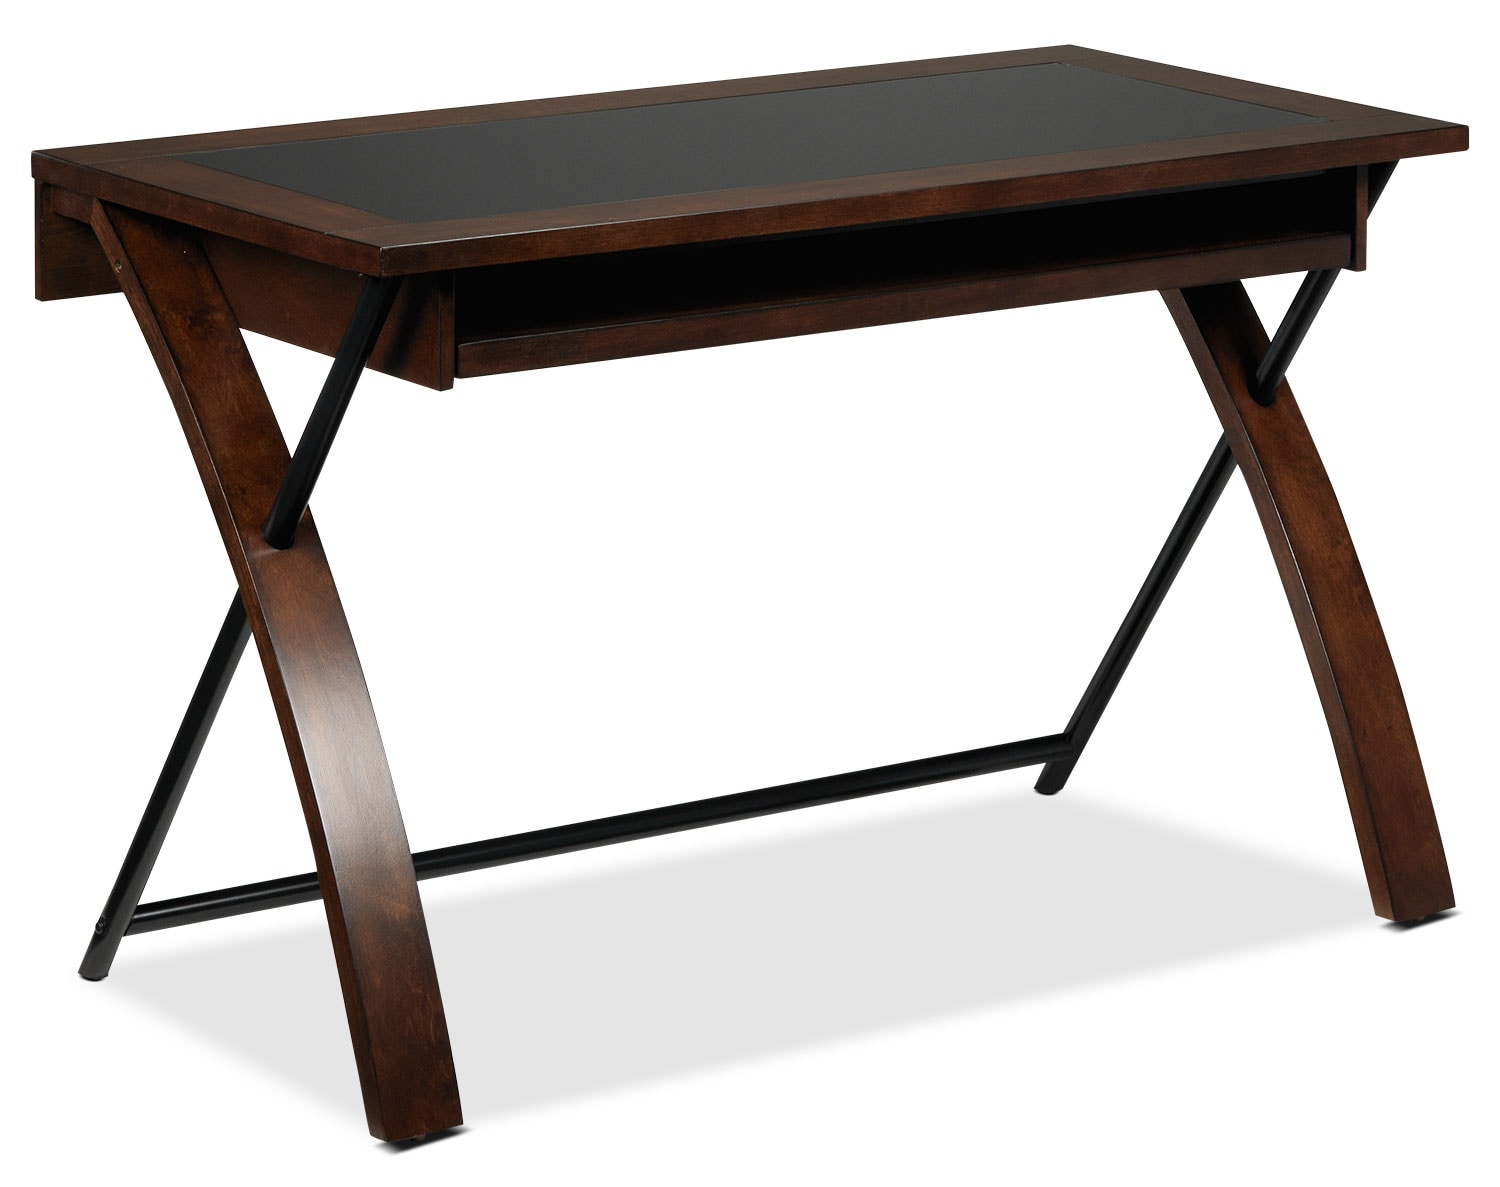 Zeta Computer Desk - Black and Brown Cherry